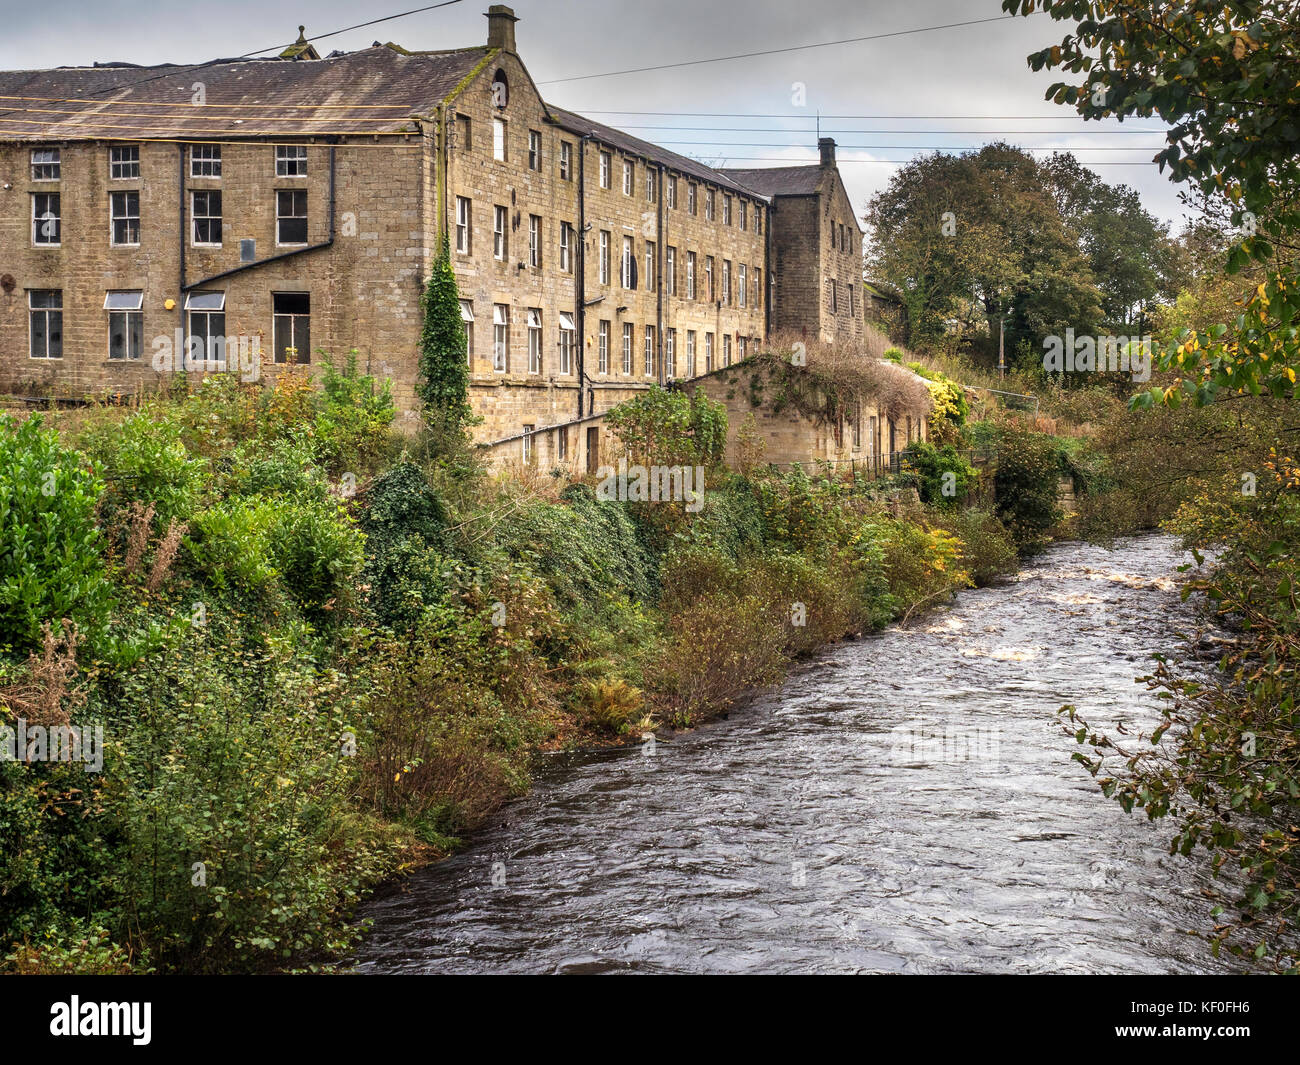 Glasshouses Mill Building Former Flax and Hemp Mill c1812 by the River Nidd Pateley Bridge Yorkshire England - Stock Image